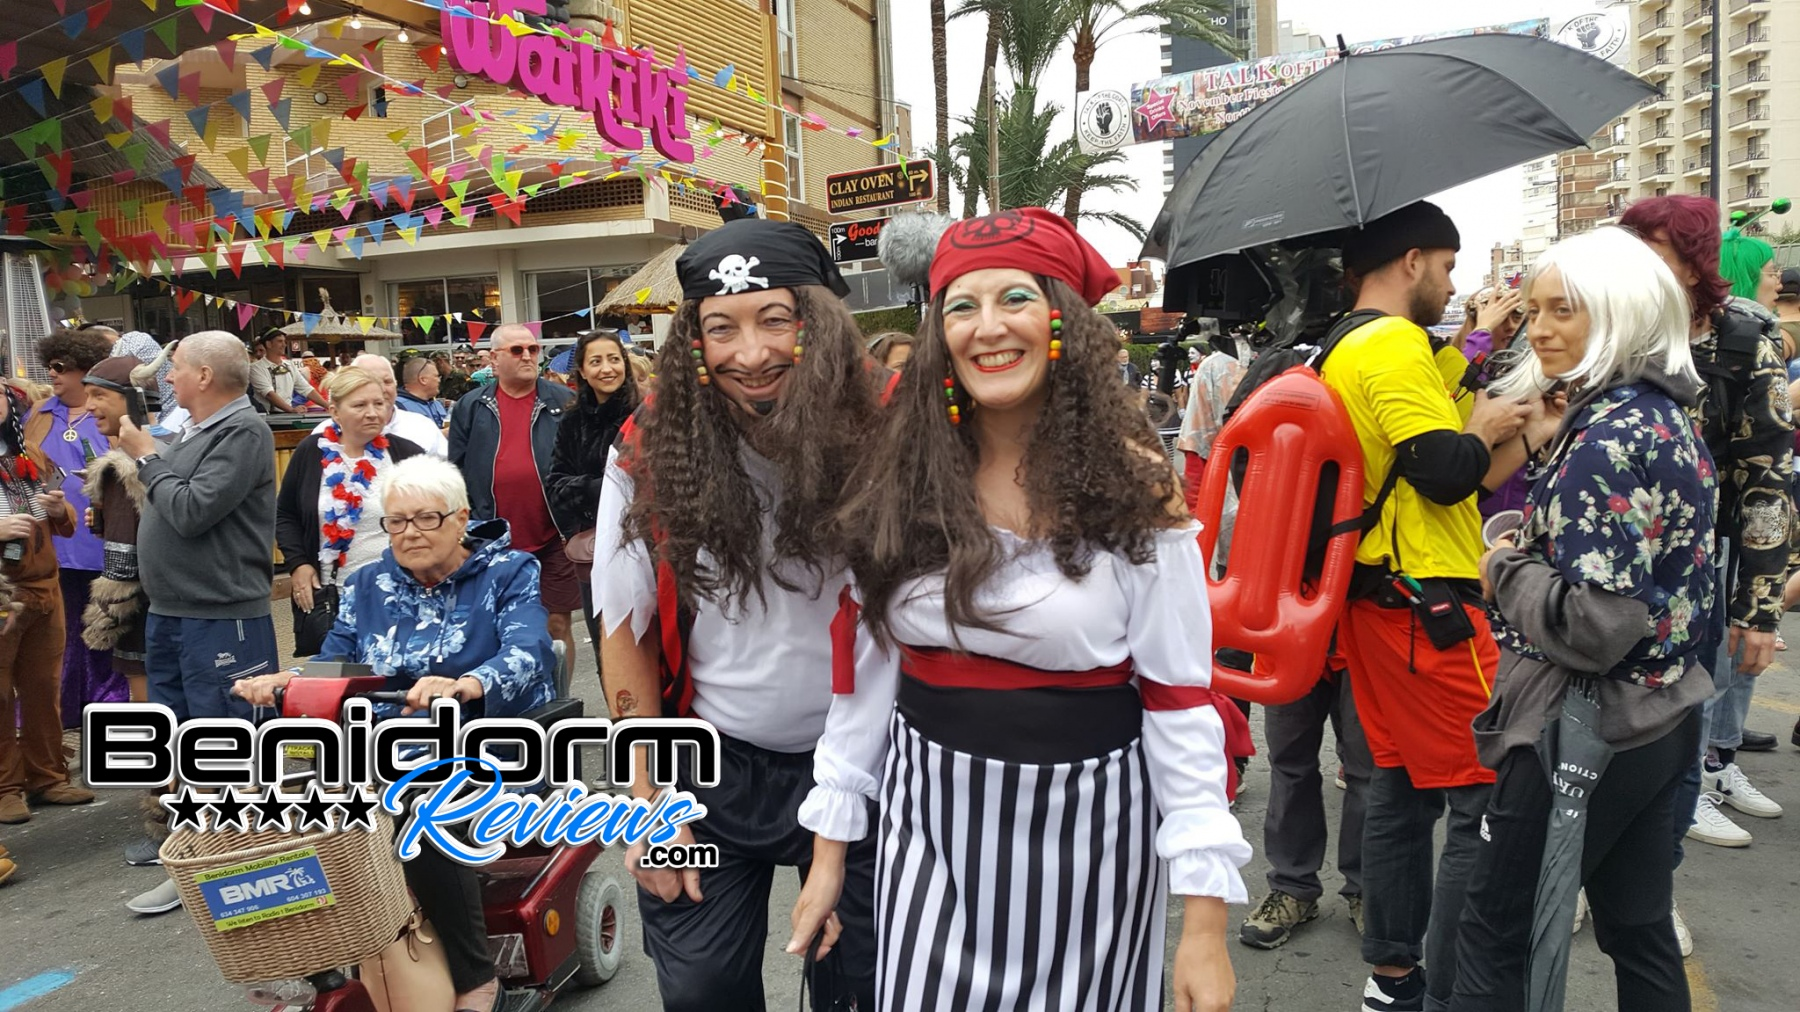 Benidorm-Fiestas-2019-Fancy-Dress-73